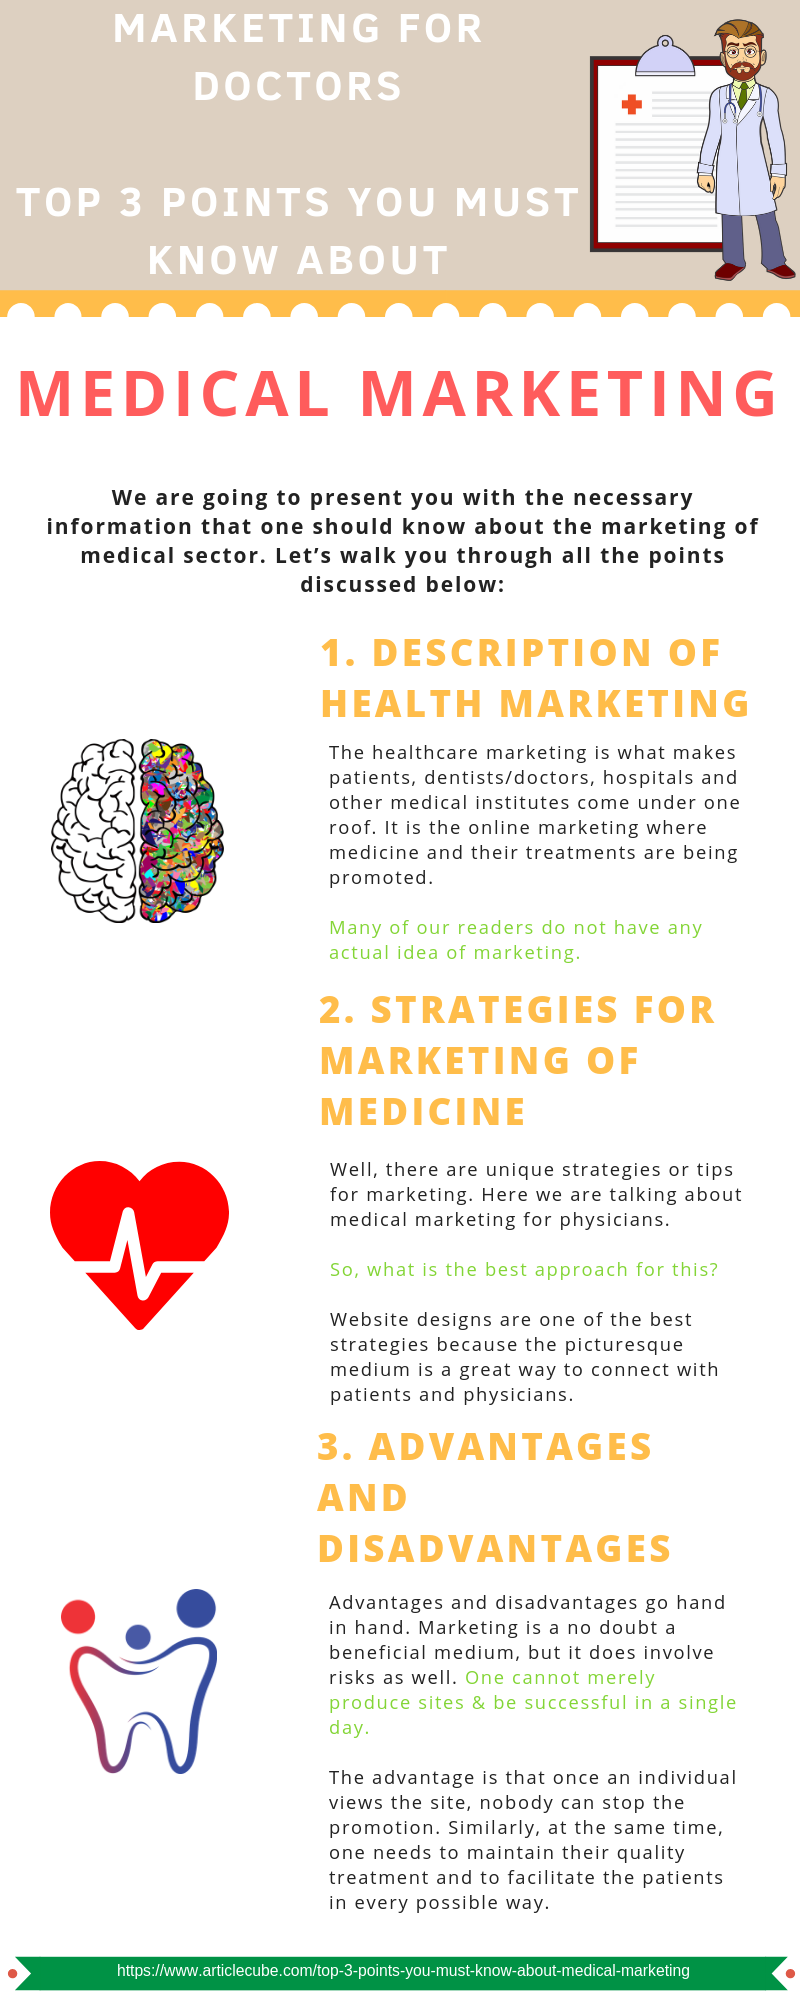 Die Marketing Medizinisches Mussen Punkte Sie Top Uber Wissen Top 3 Points You Must Know In 2020 Medical Marketing Healthcare Marketing Healthcare Advertising